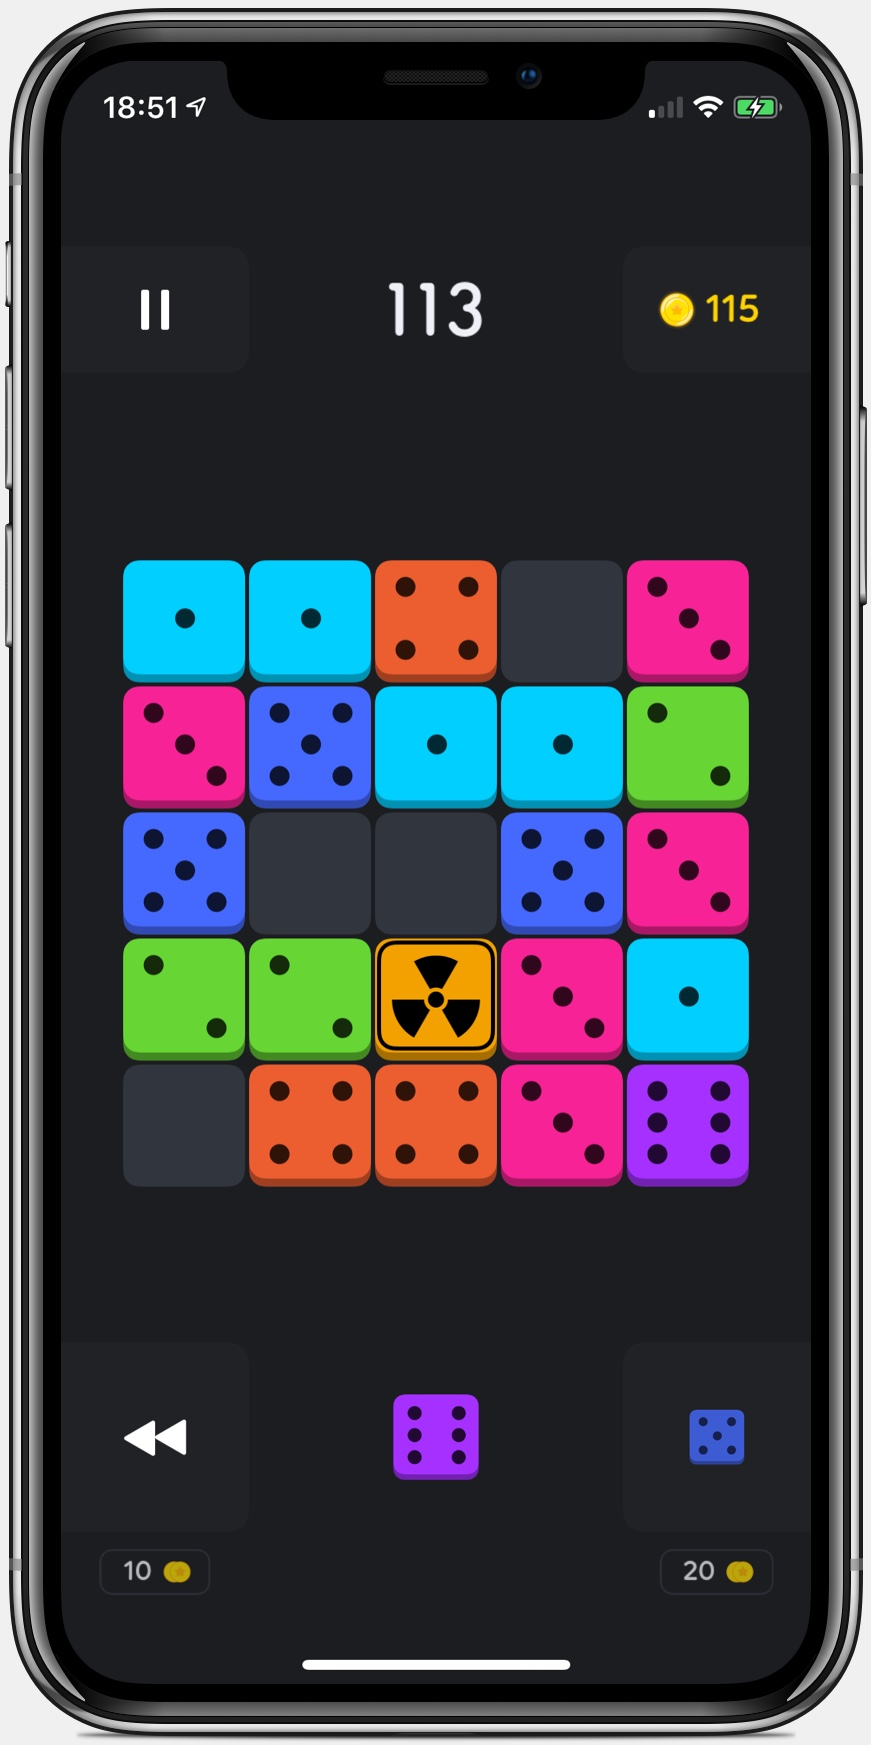 Blockk game for iPad and iPhone